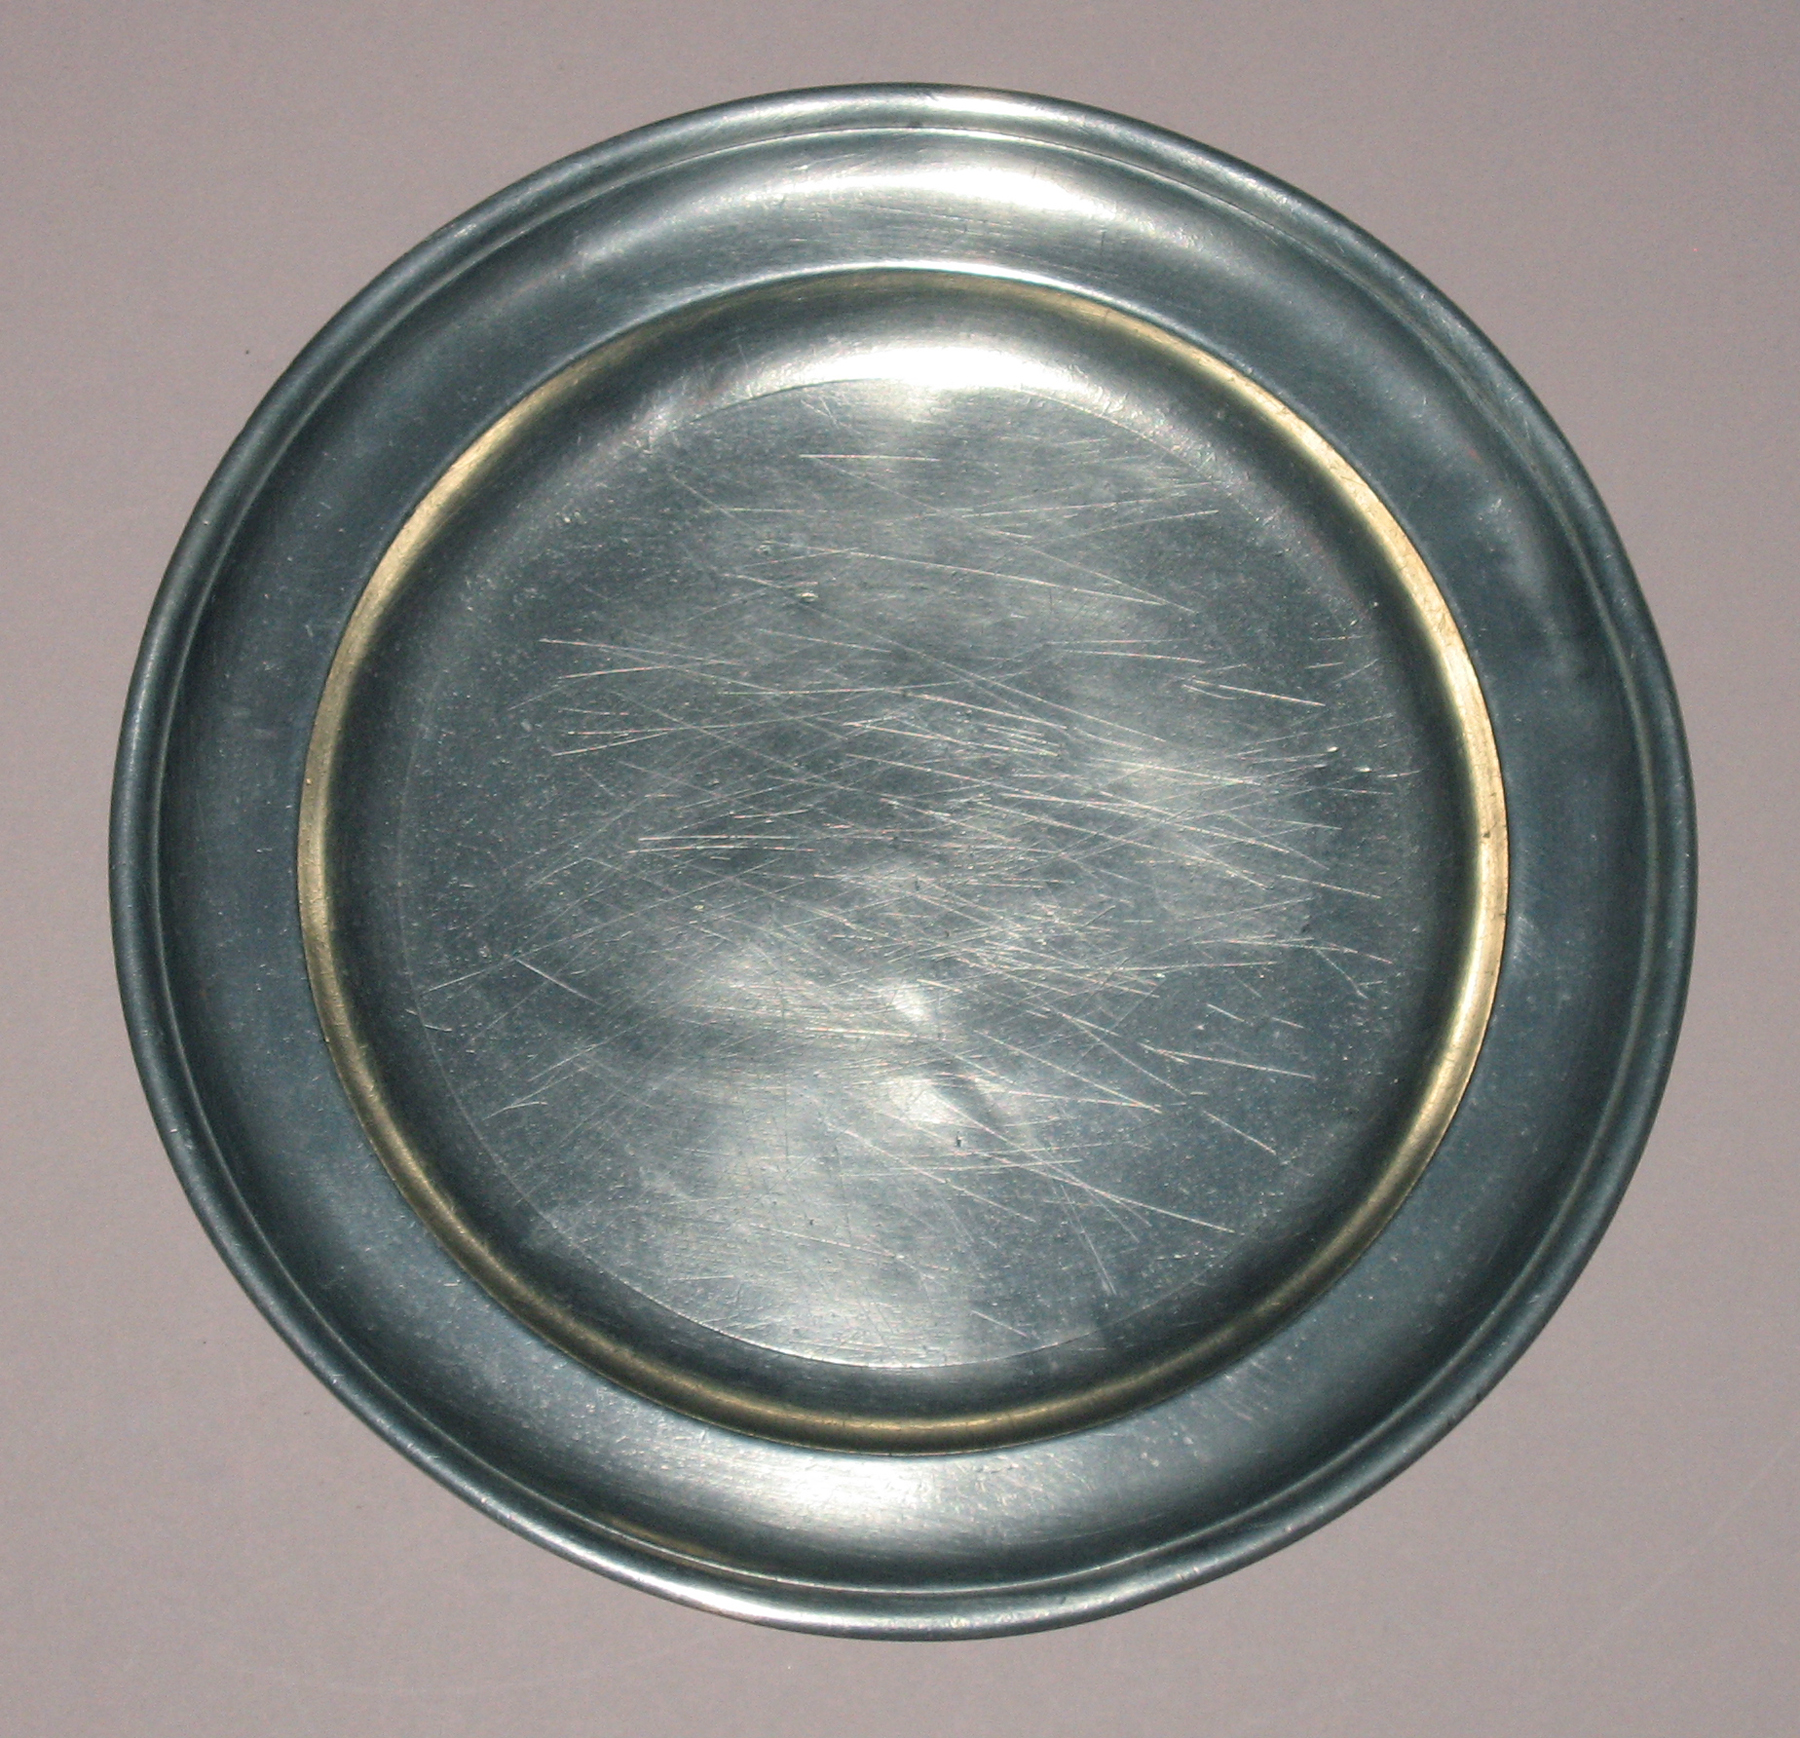 1953.0155.012 Pewter plate